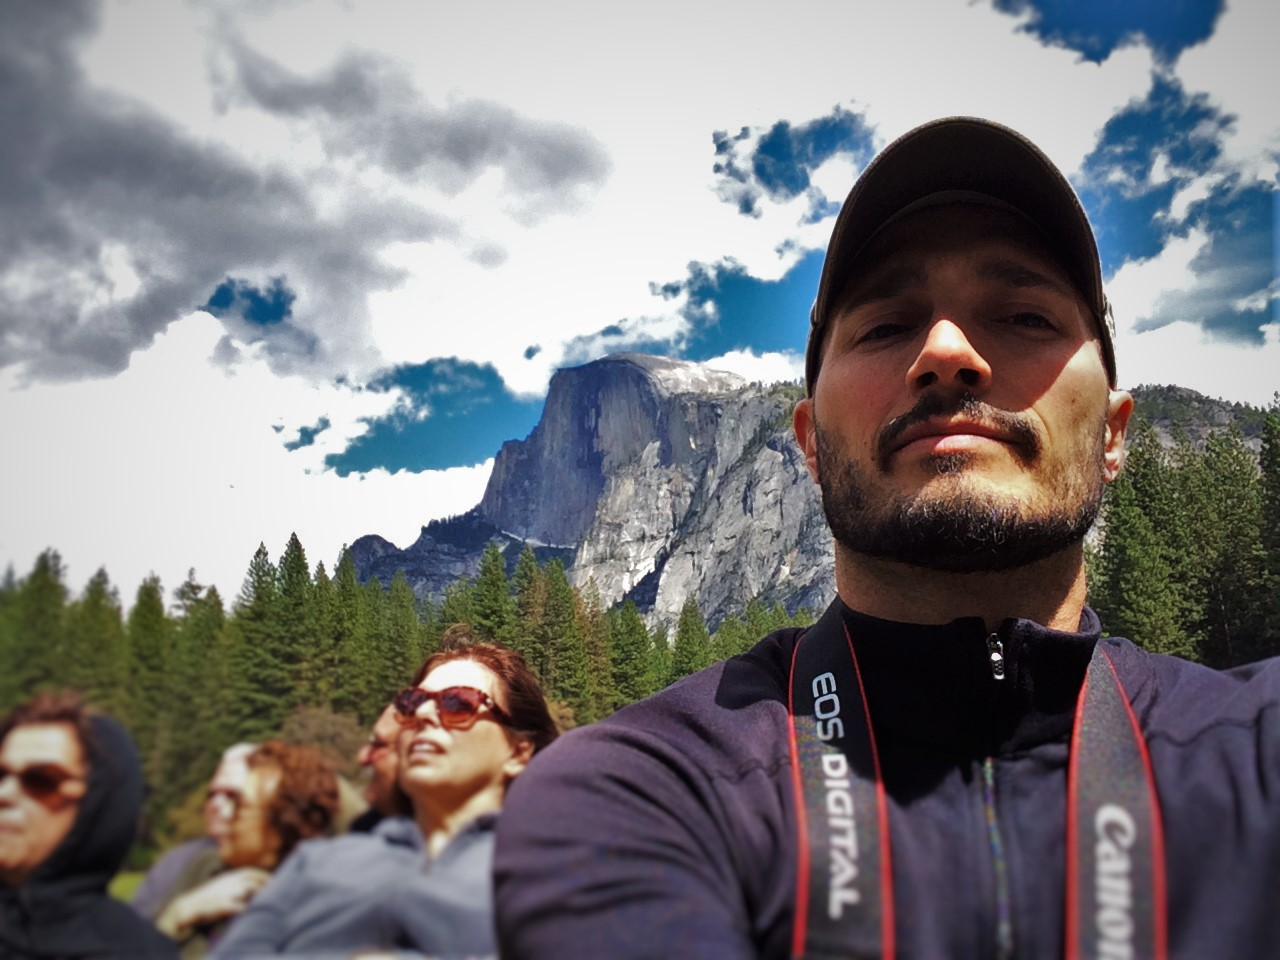 Rob Taylor and Half Dome from Valley Floor in Yosemite National Park 2traveldads.com